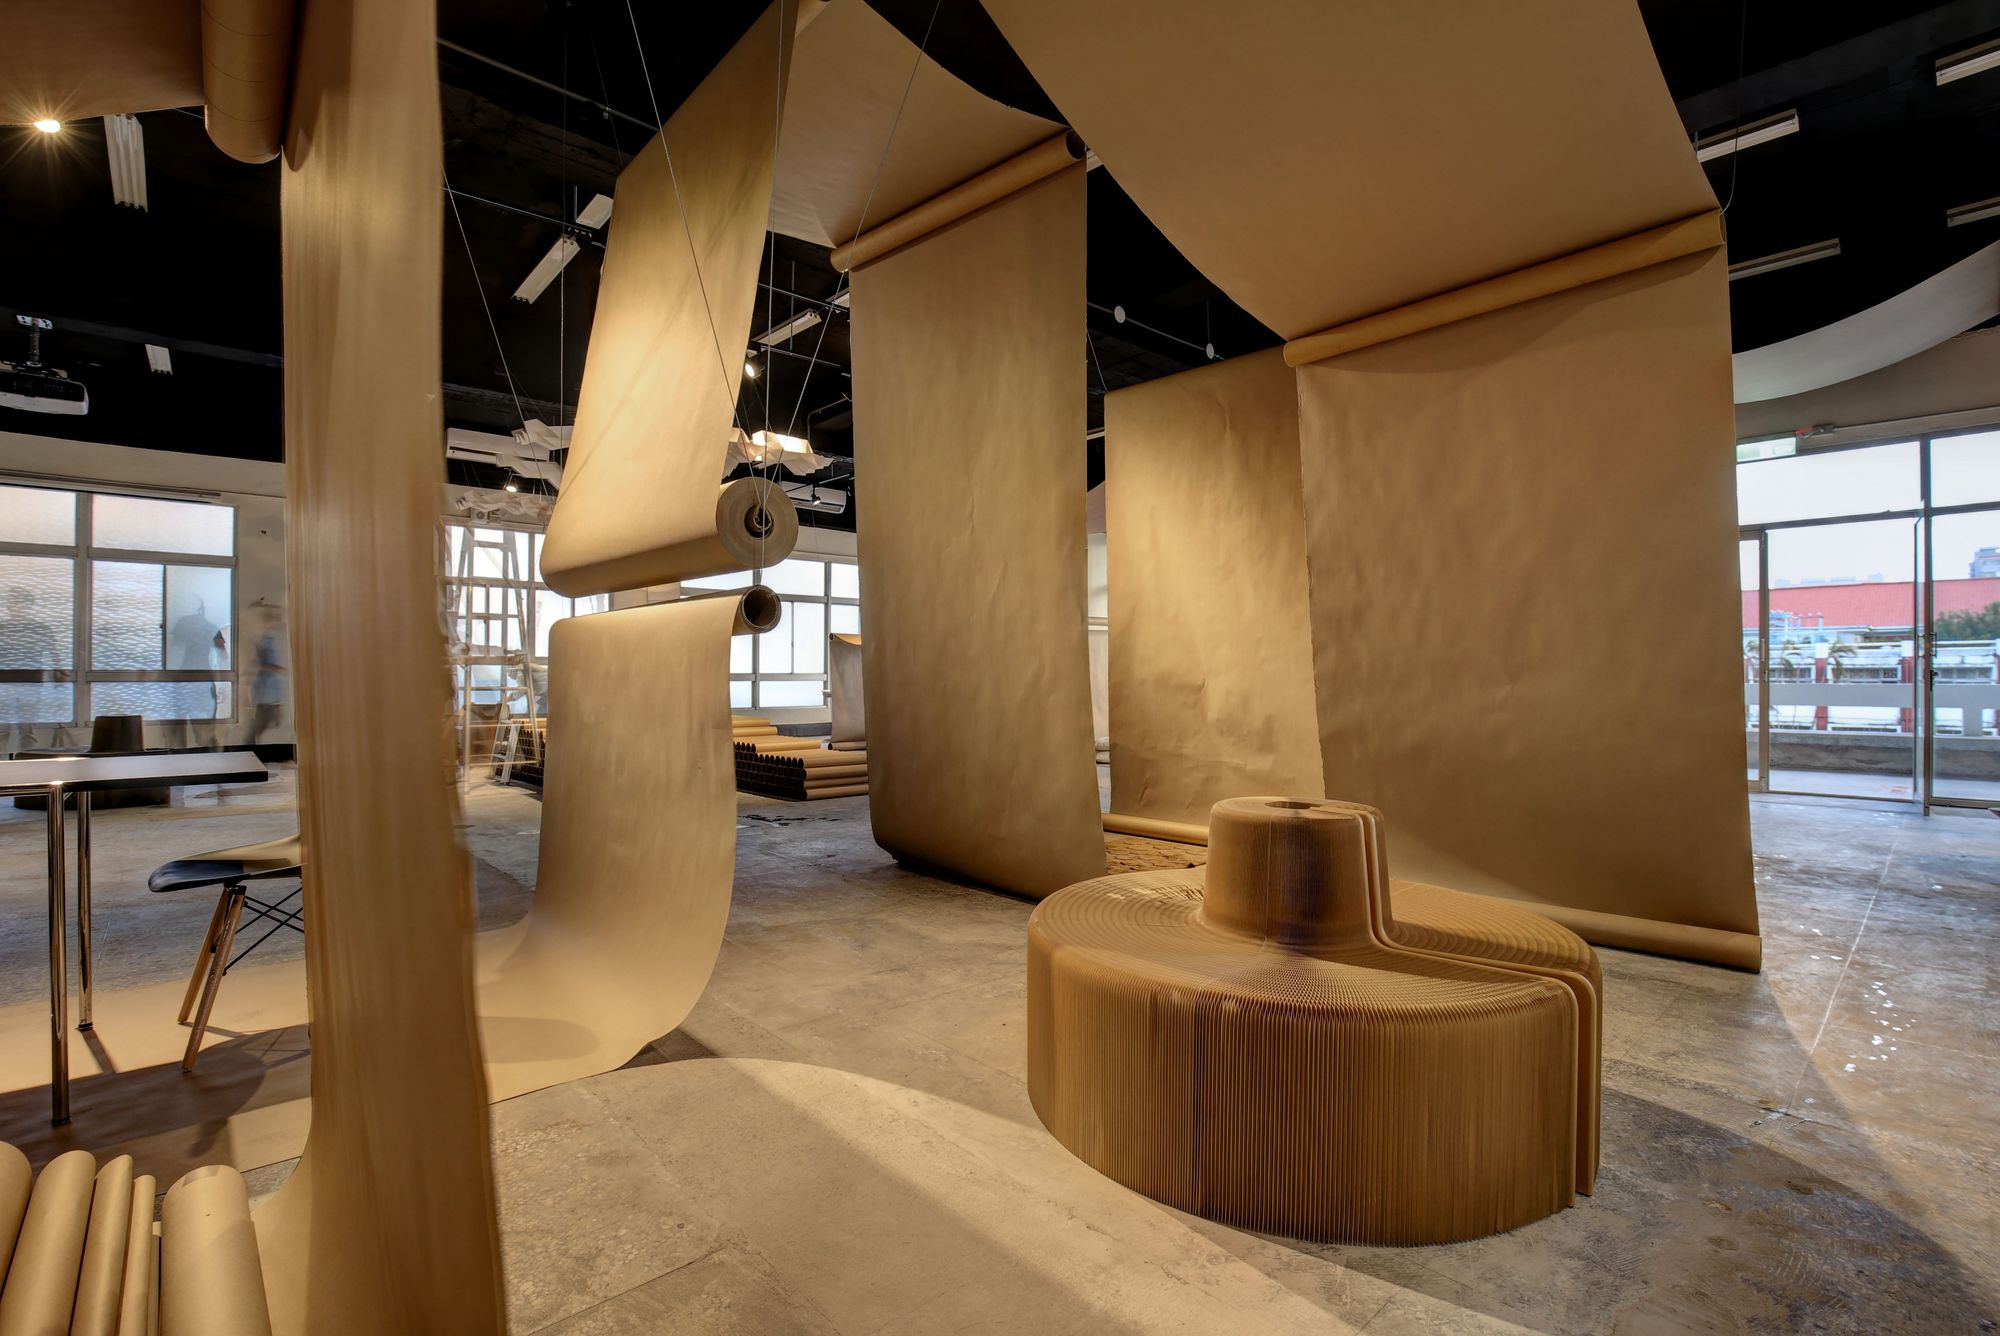 Gallery Of Happier Caf Paper Space Jc Architecture 2